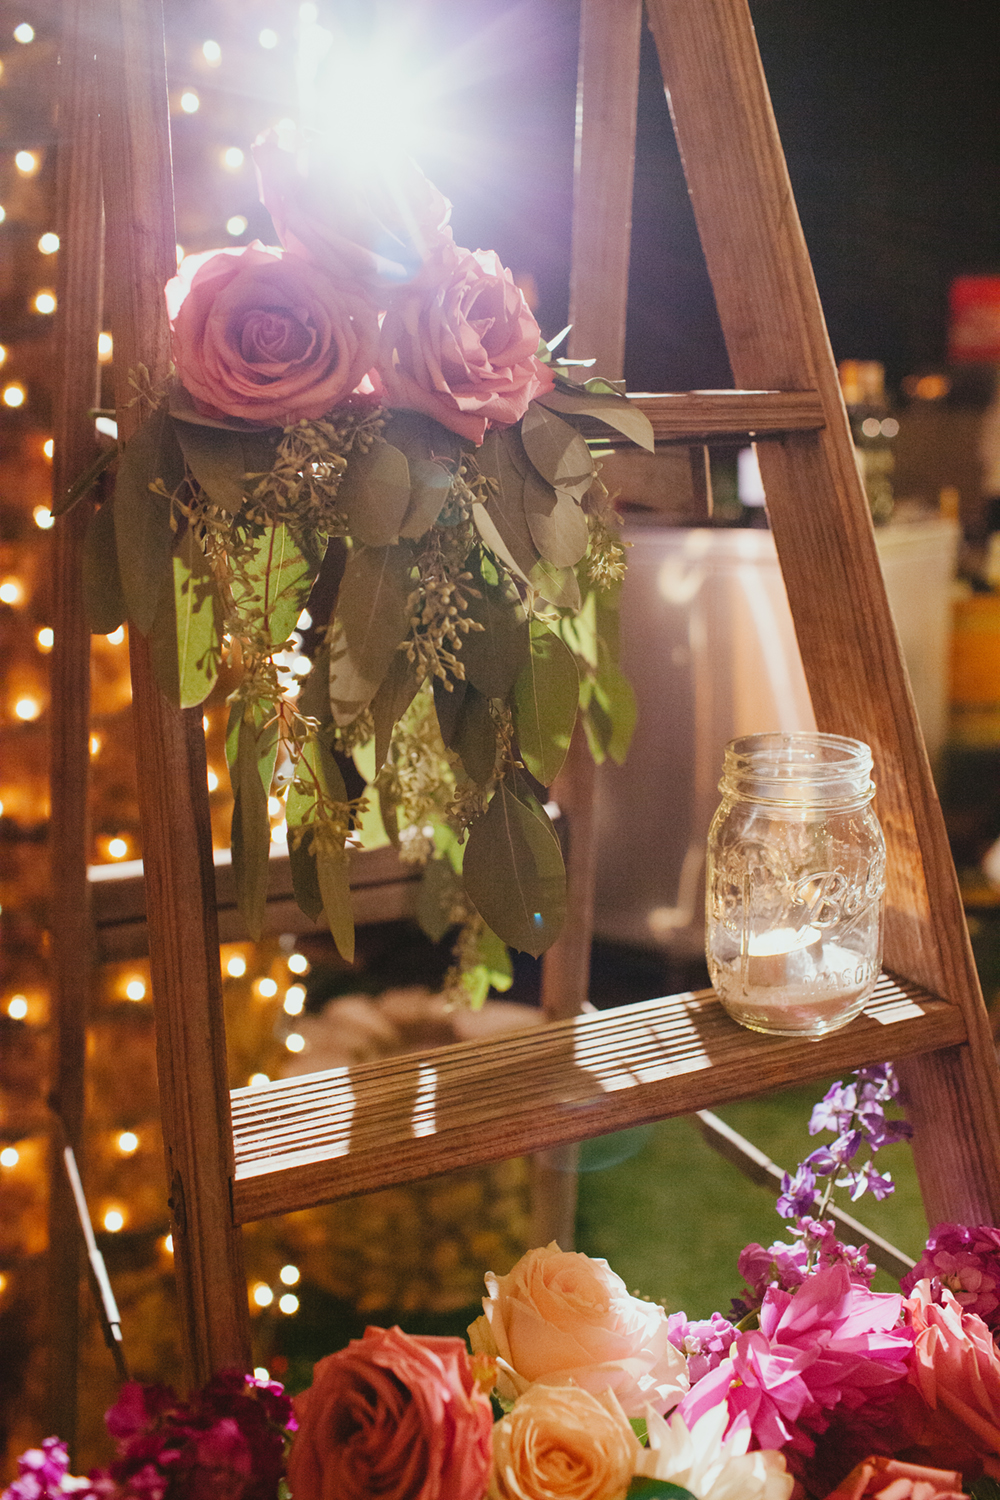 Saratoga-Springs-Outdoor-Rustic-Wedding-Details-21.JPG